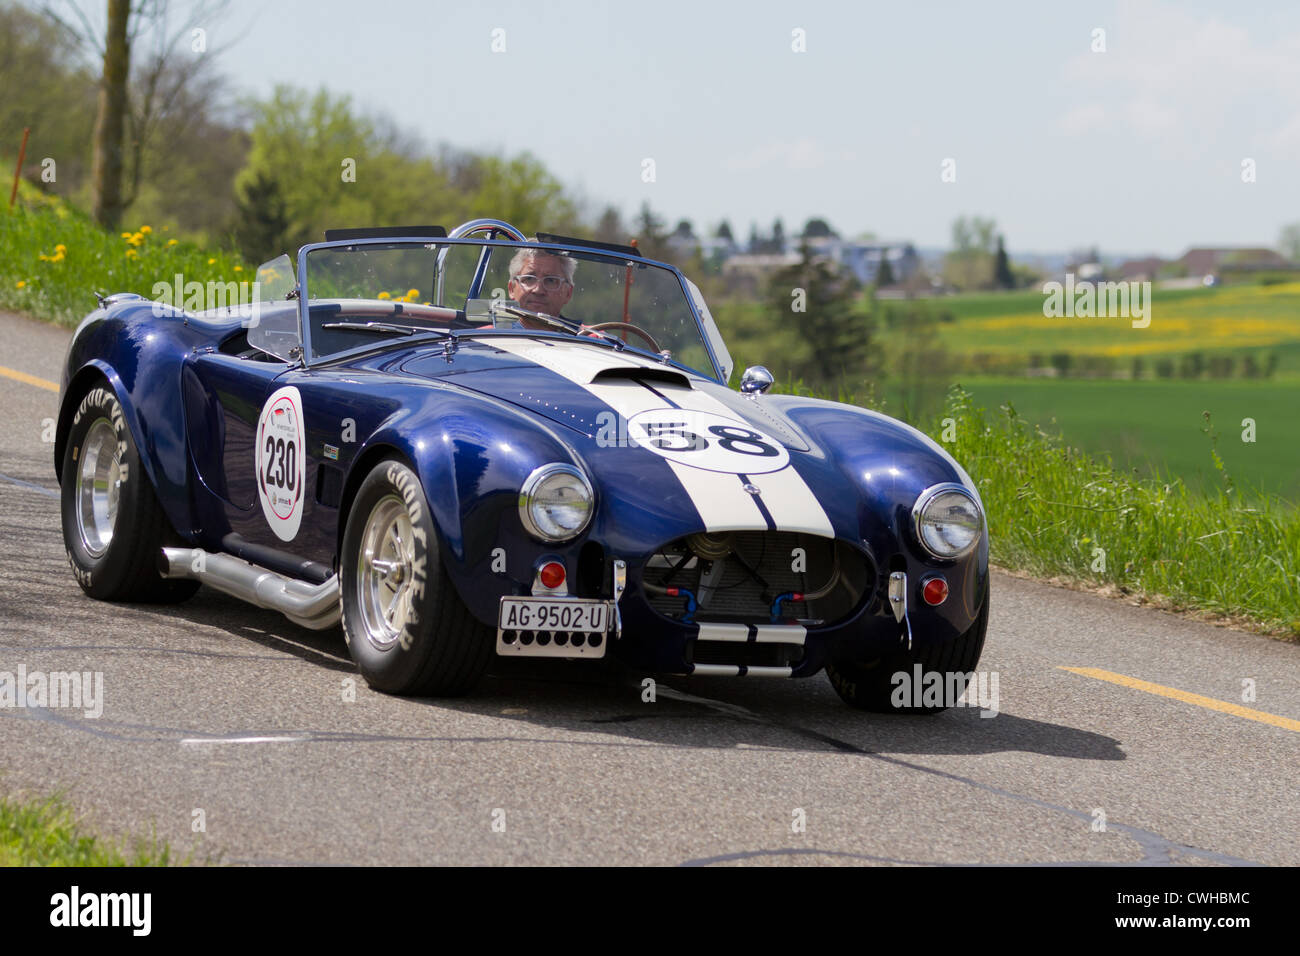 Vintage race touring car AC Cobra 427 SC Contemporary from 1965 at Grand Prix in Mutschellen, SUI on April 29, 2012. - Stock Image